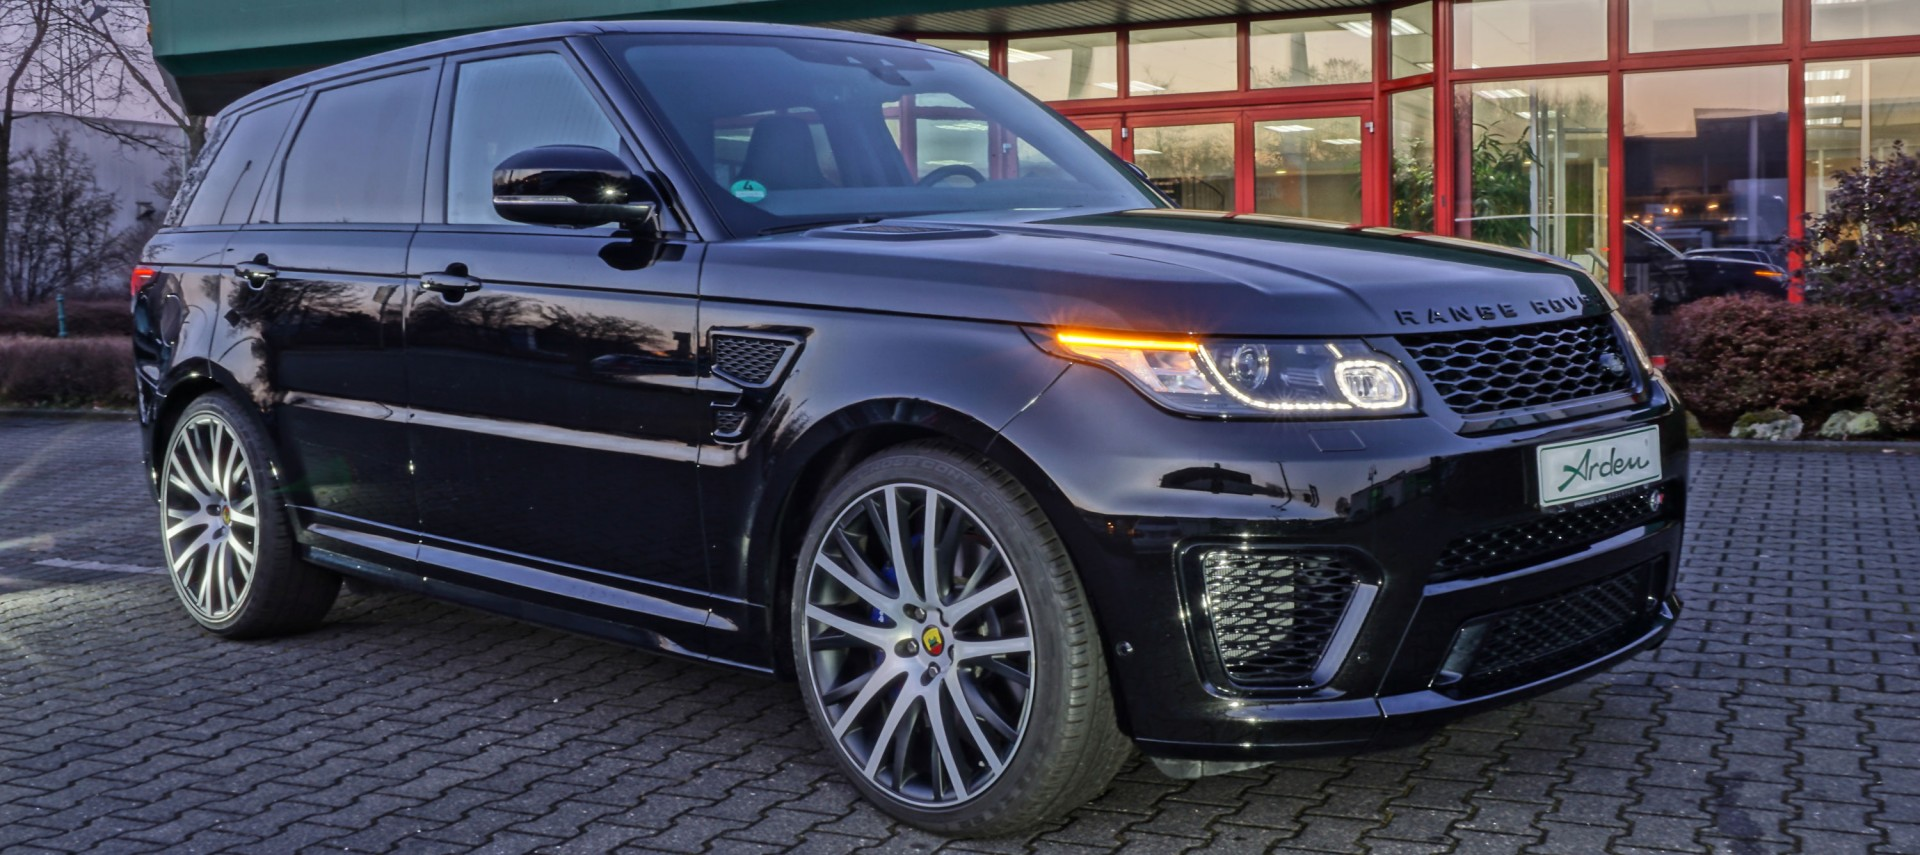 range rover sport tuning exclusive refinement arden. Black Bedroom Furniture Sets. Home Design Ideas